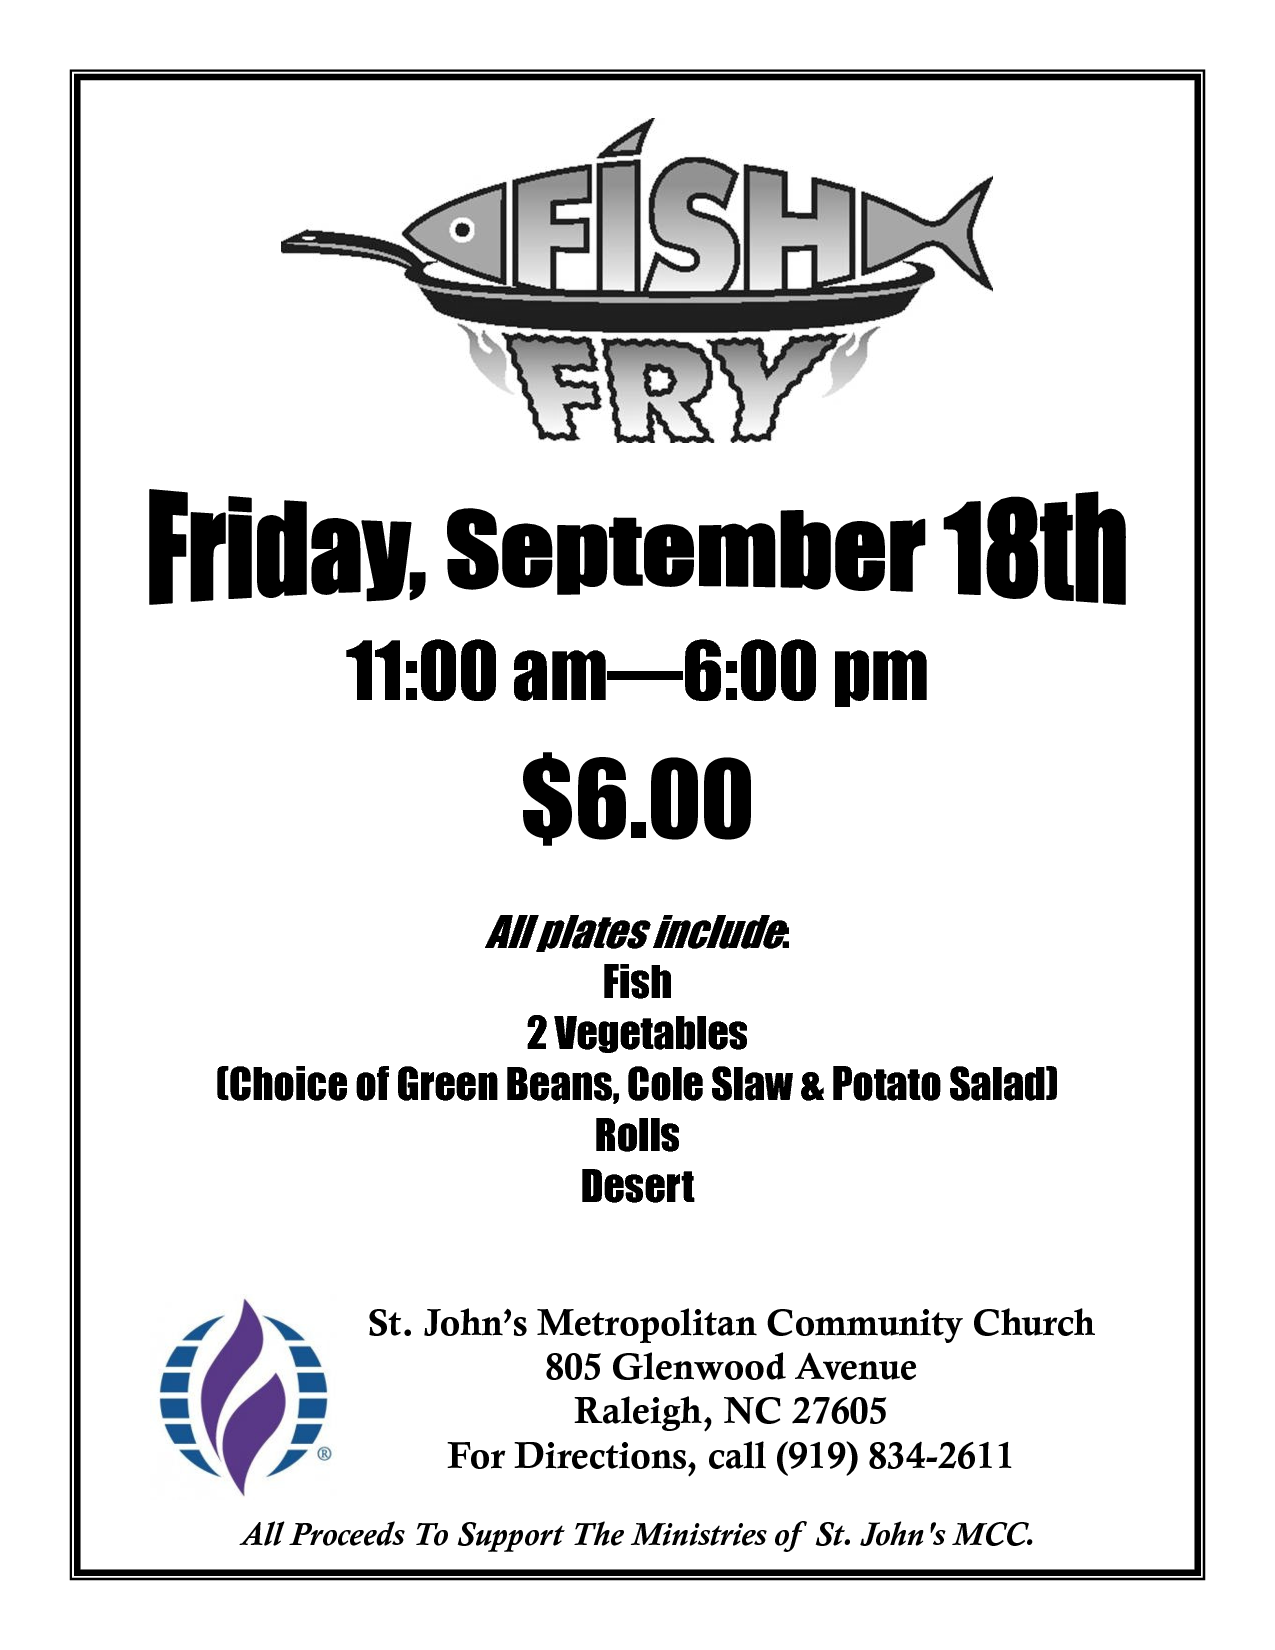 Free Fish Fry Flyer Templates | Fish Fry Poster